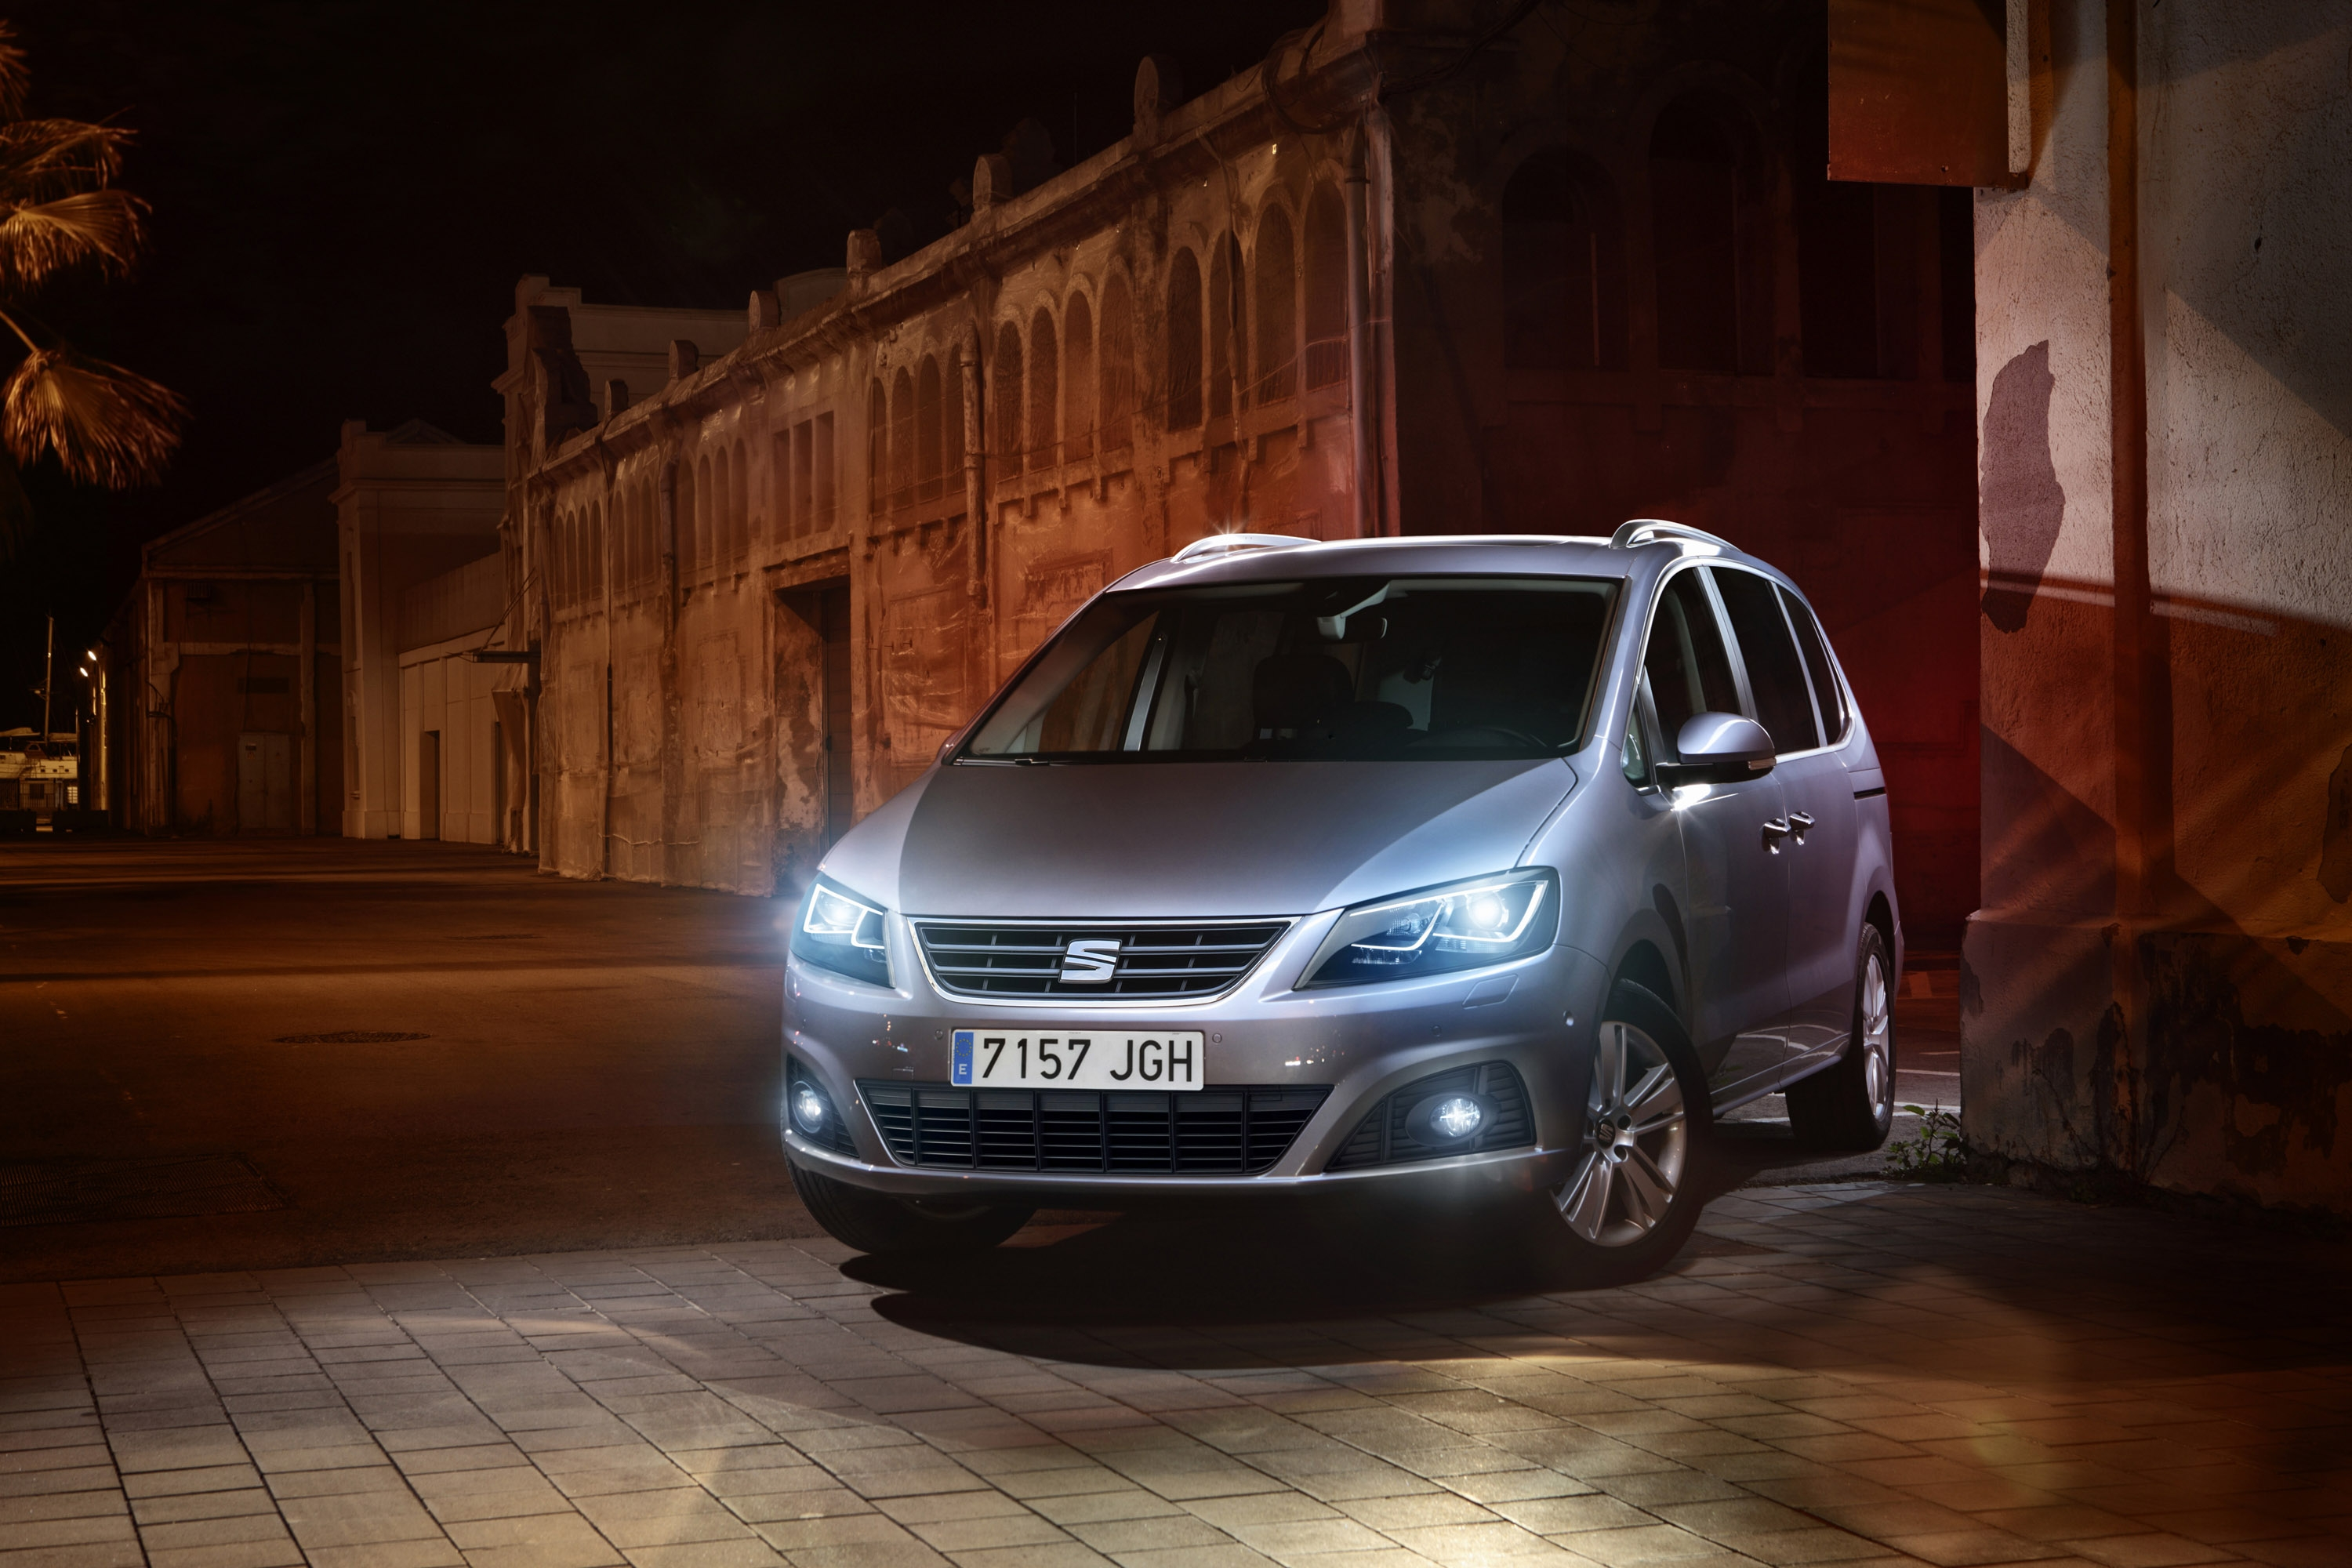 2016 Seat Alhambra thumbnail photo 92687